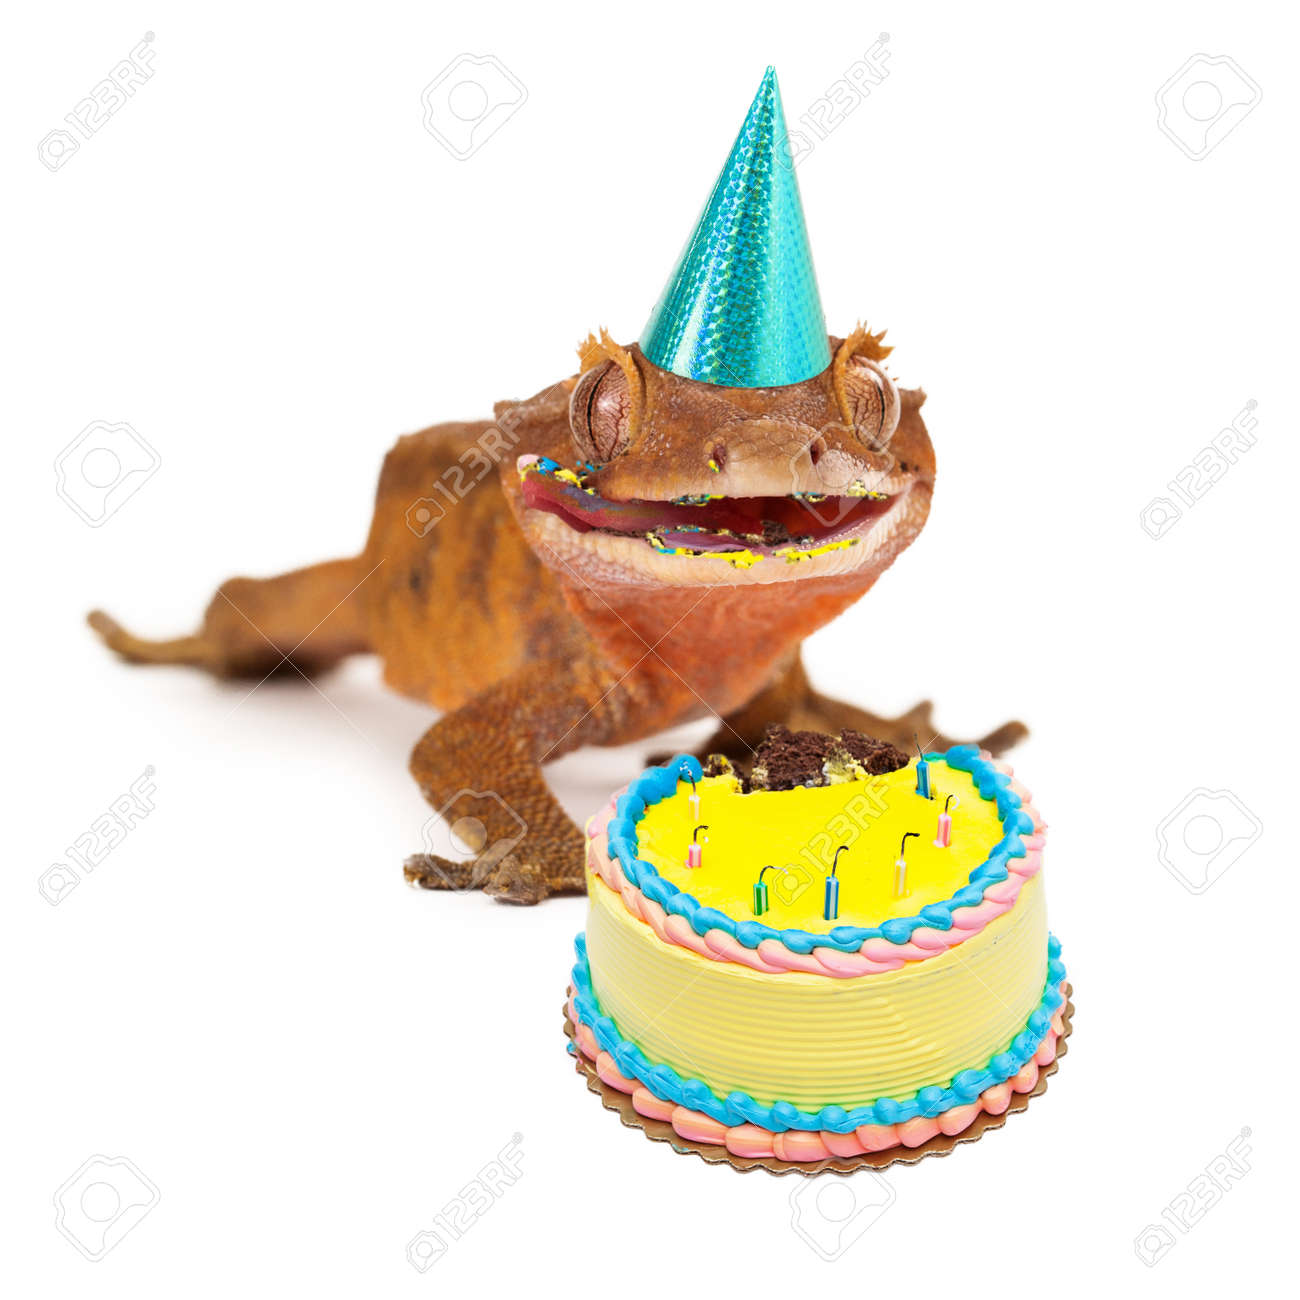 A Funny Crested Gecko Wearing Birthday Party Hat With Messy Face From Eating Cake